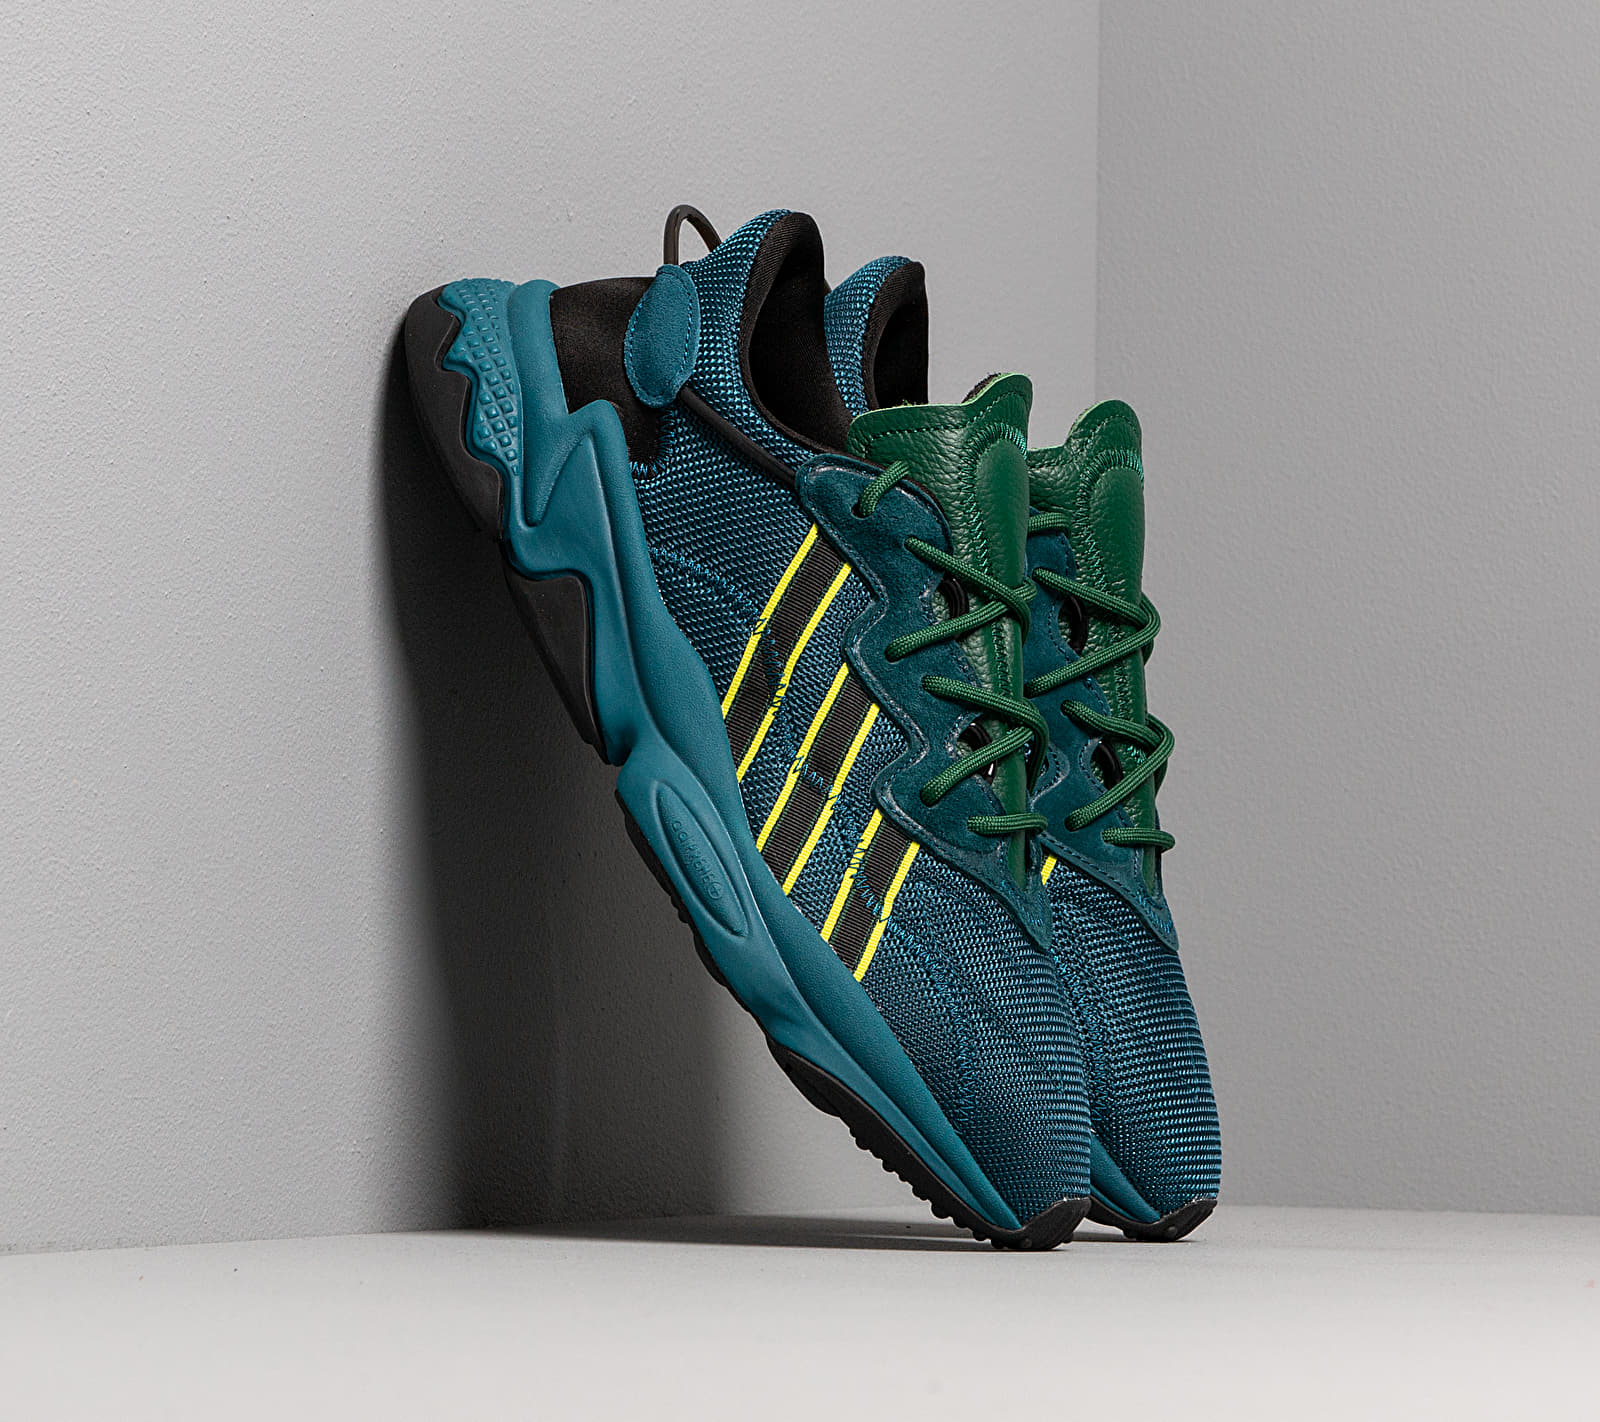 adidas x Pusha T Ozweego Tech Mineral/ Tech Mineral/ Tech Mineral, Blue